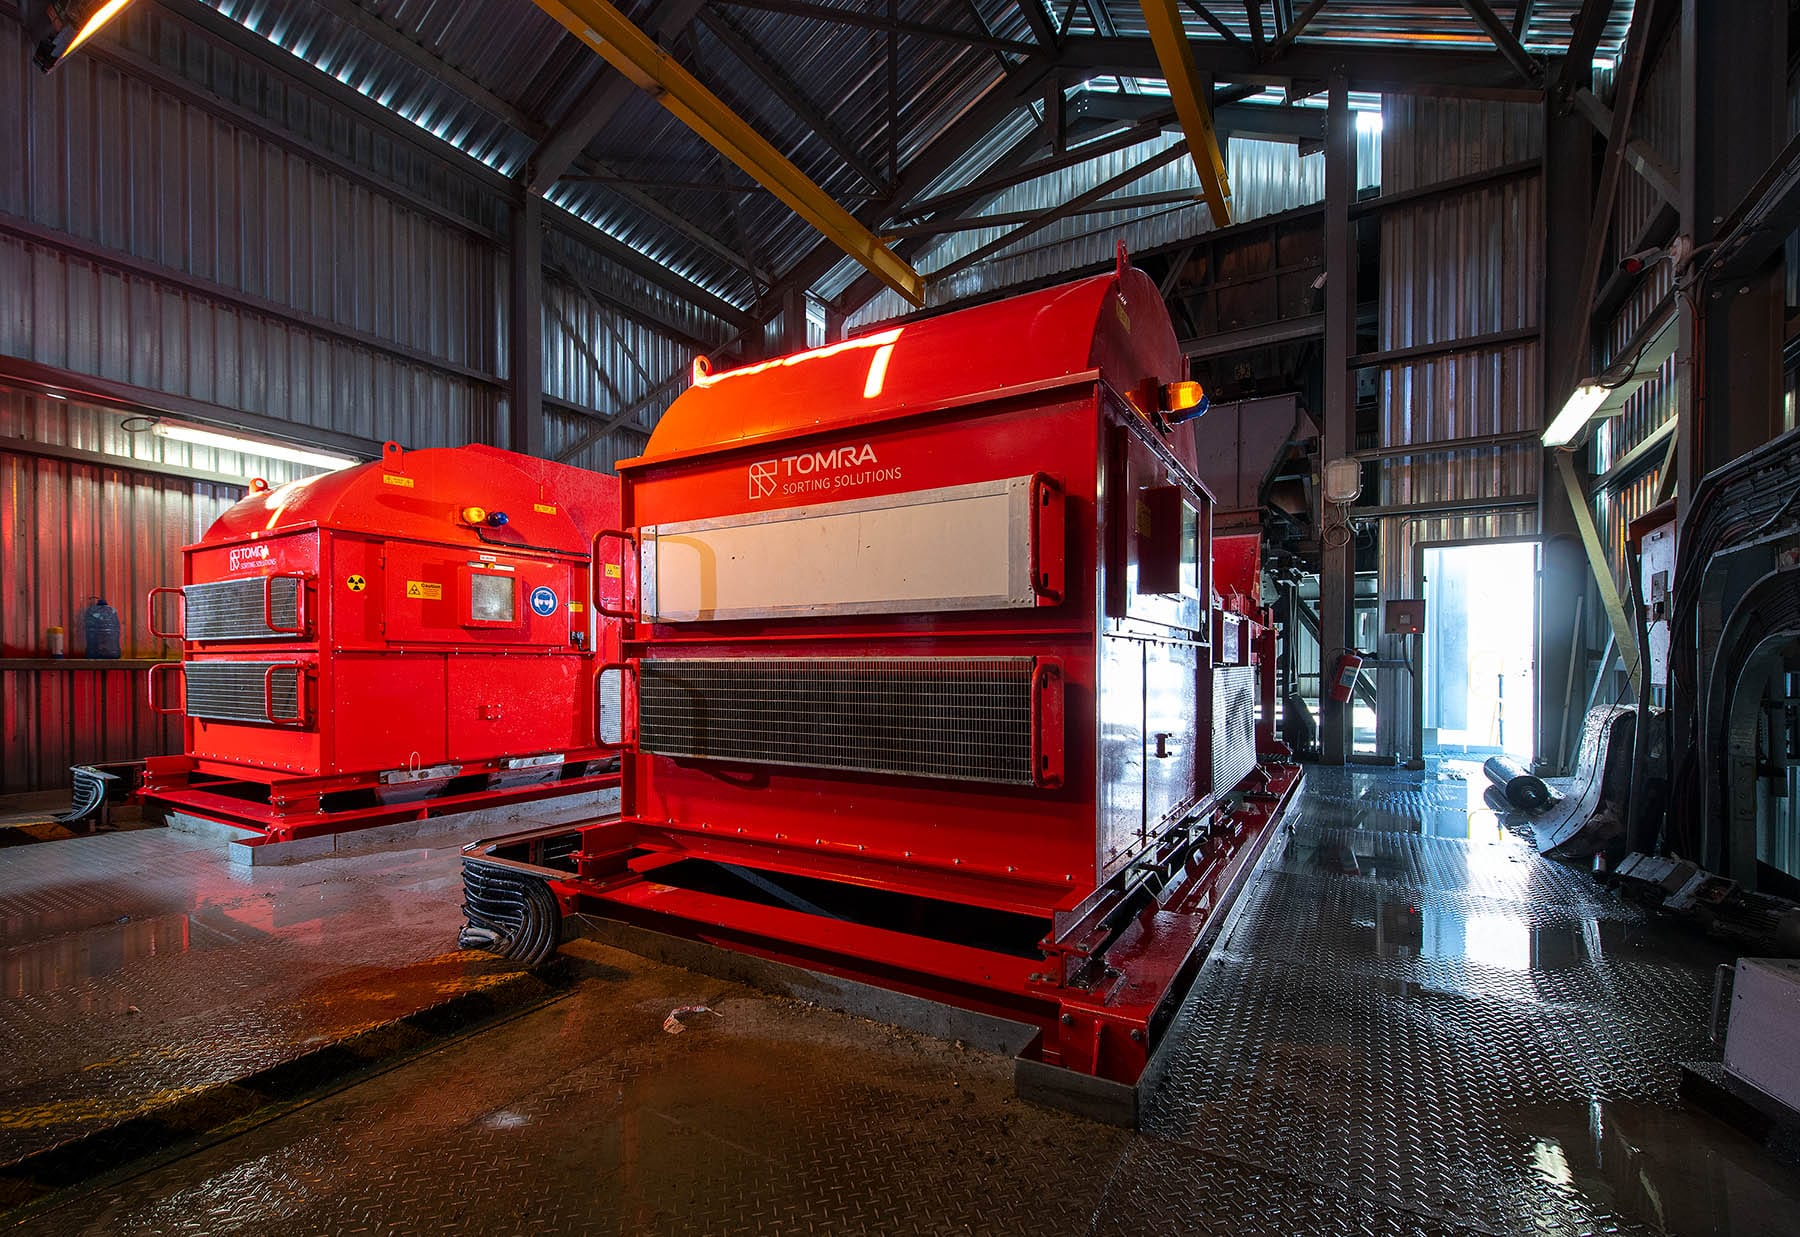 Profitable green mining is a reality with TOMRA's advanced sorting technologies